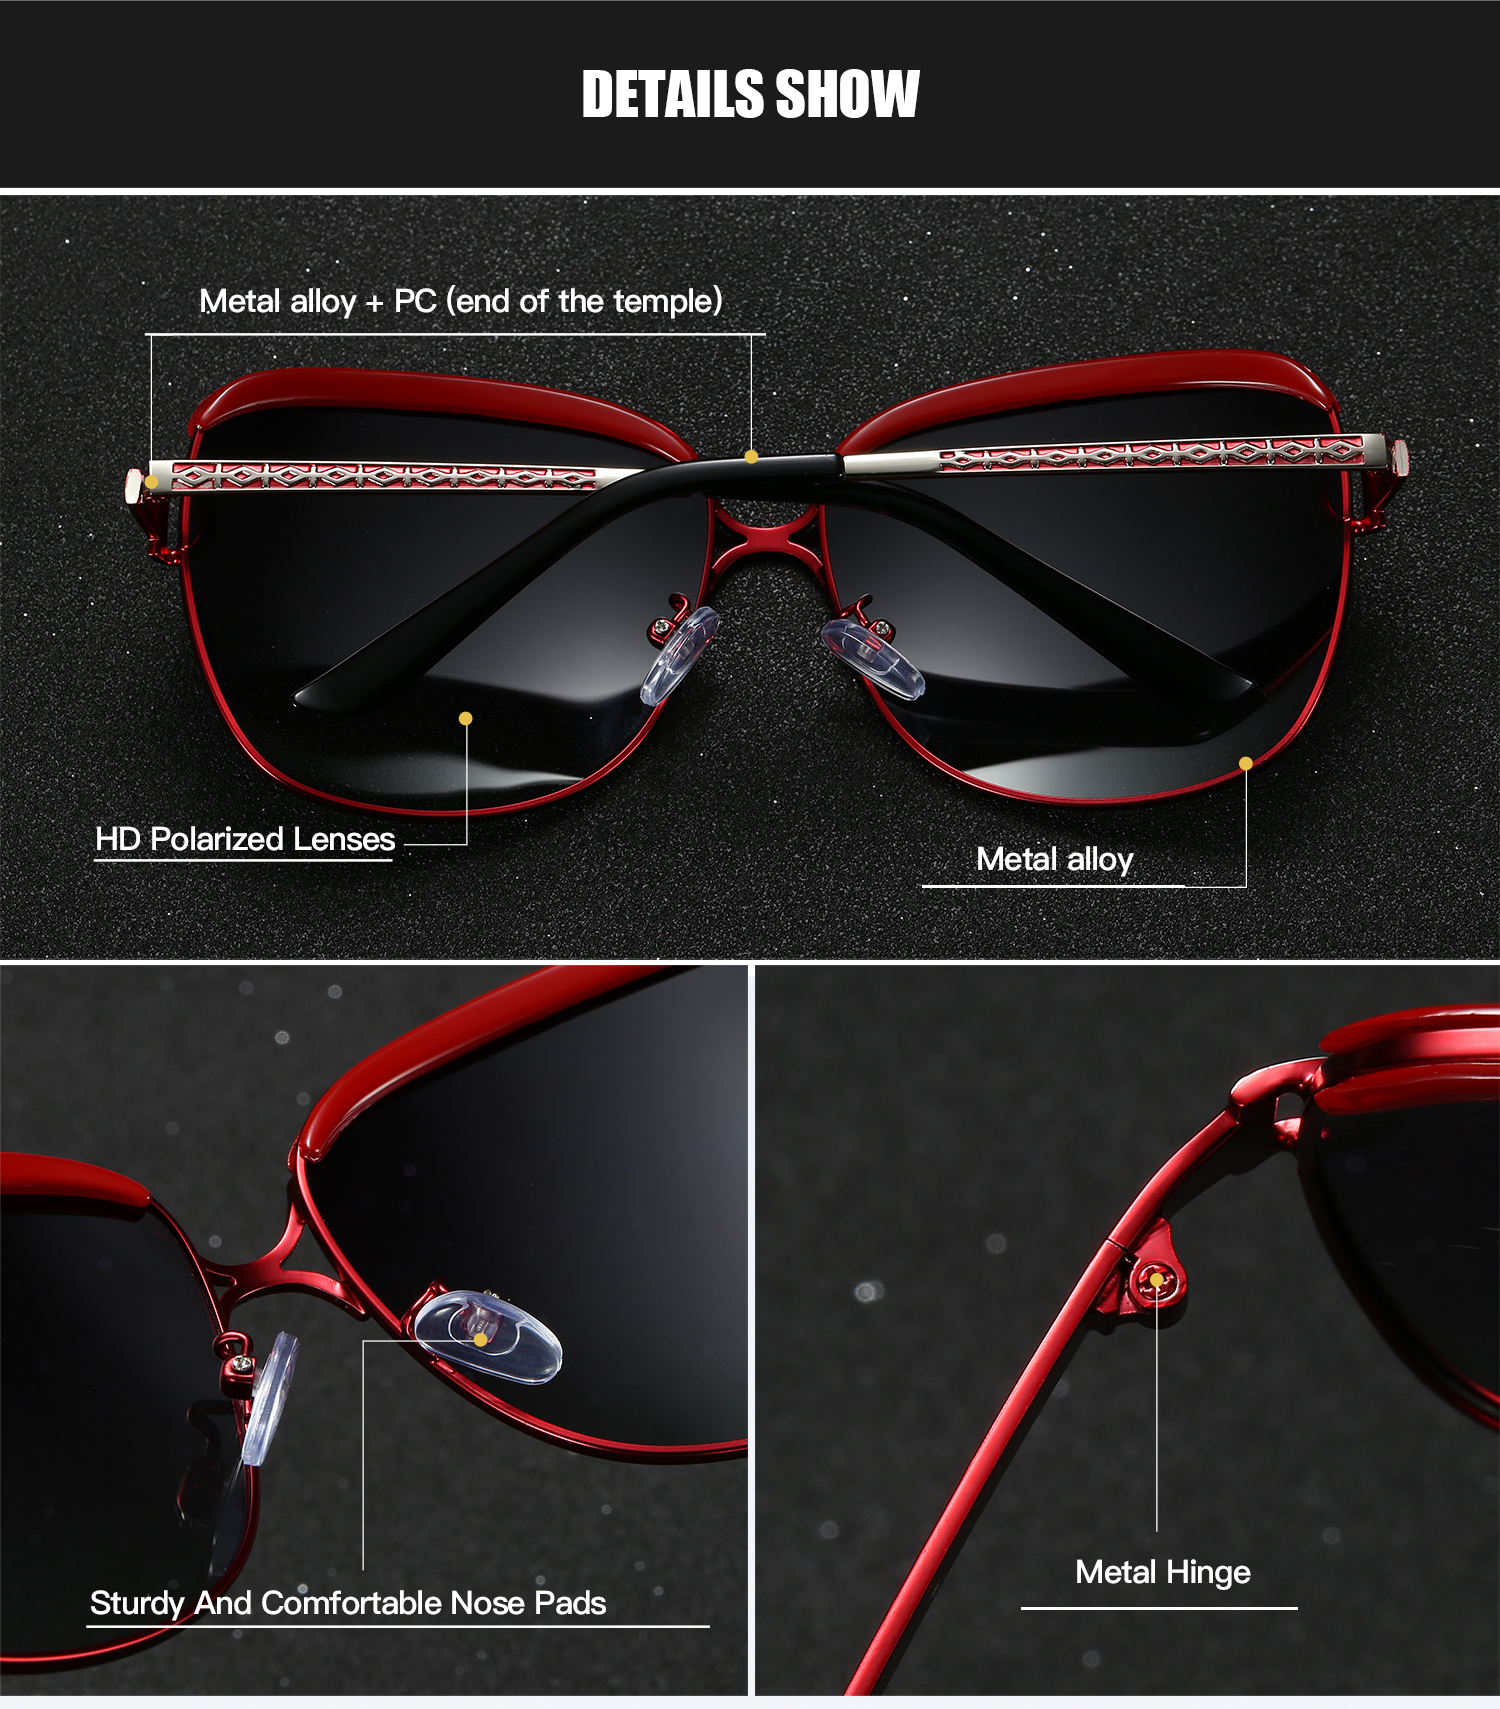 RoyalHot Women Polarized Sunglasses Oversized Vintage Aloly Frame Driving Sun Glasses Shades Oculos masculino Male 60012 in Women 39 s Sunglasses from Apparel Accessories